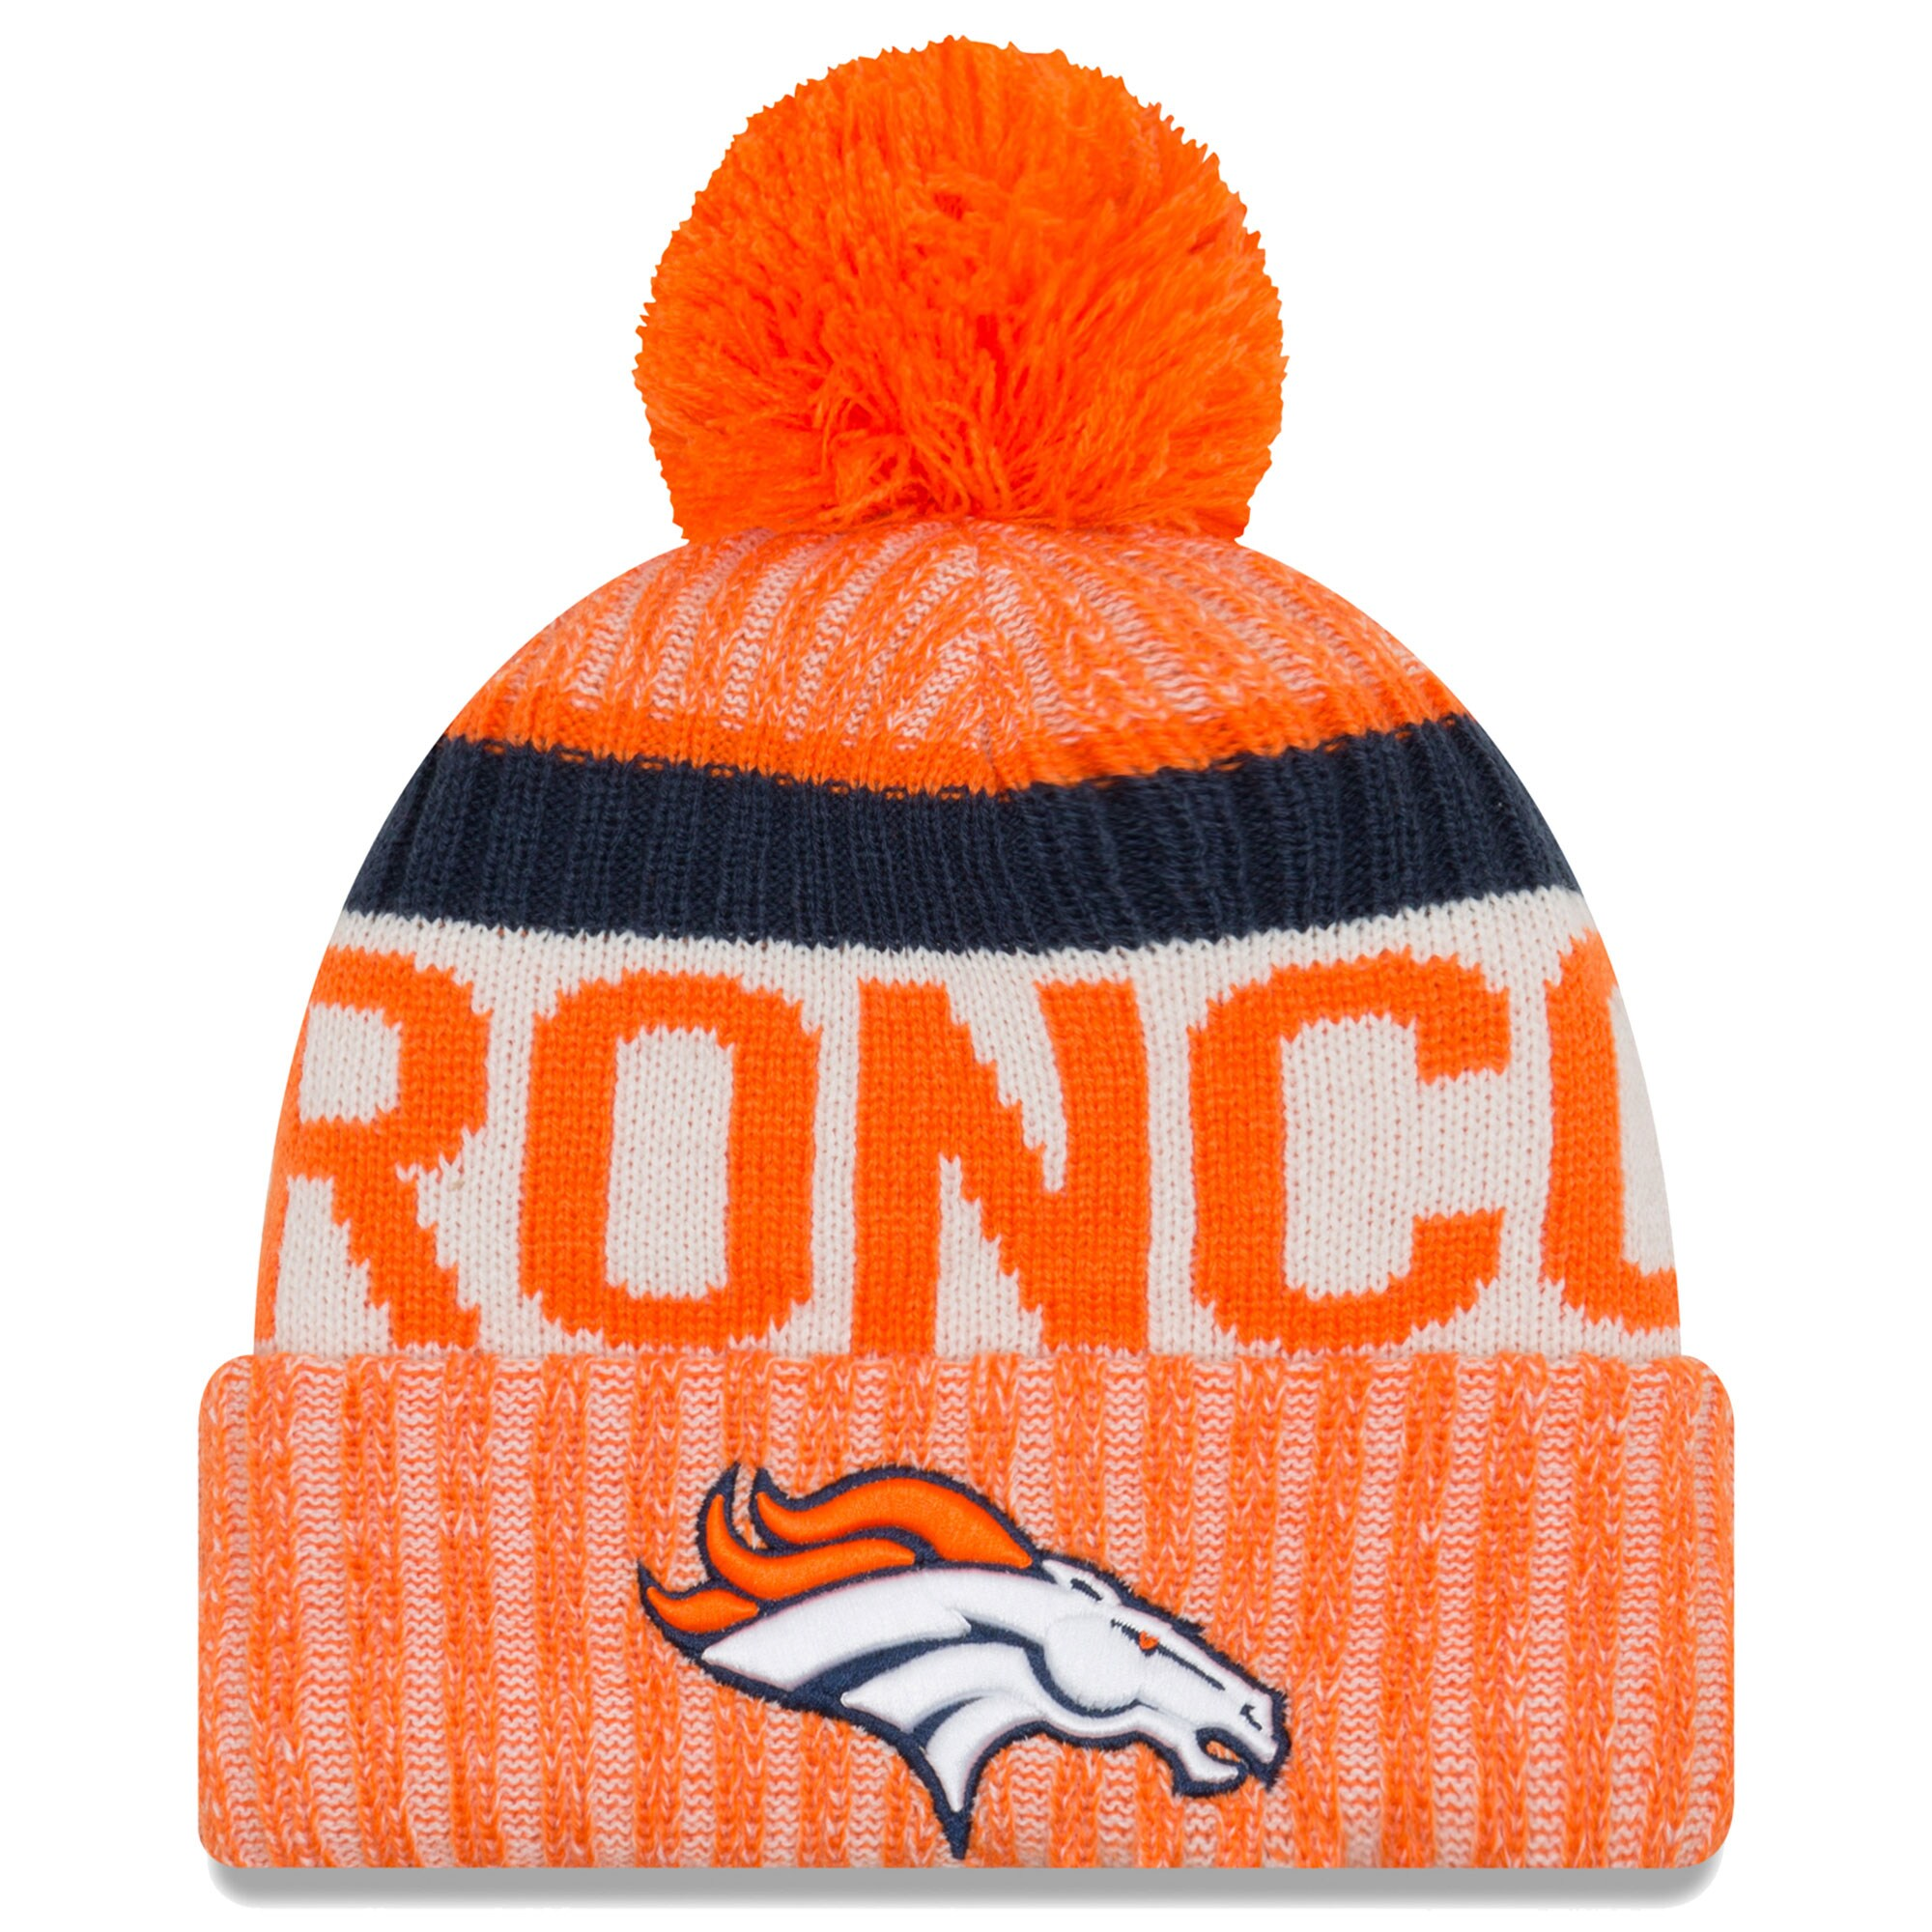 Denver Broncos New Era 2017 Sideline Official Sport Knit Hat - Orange